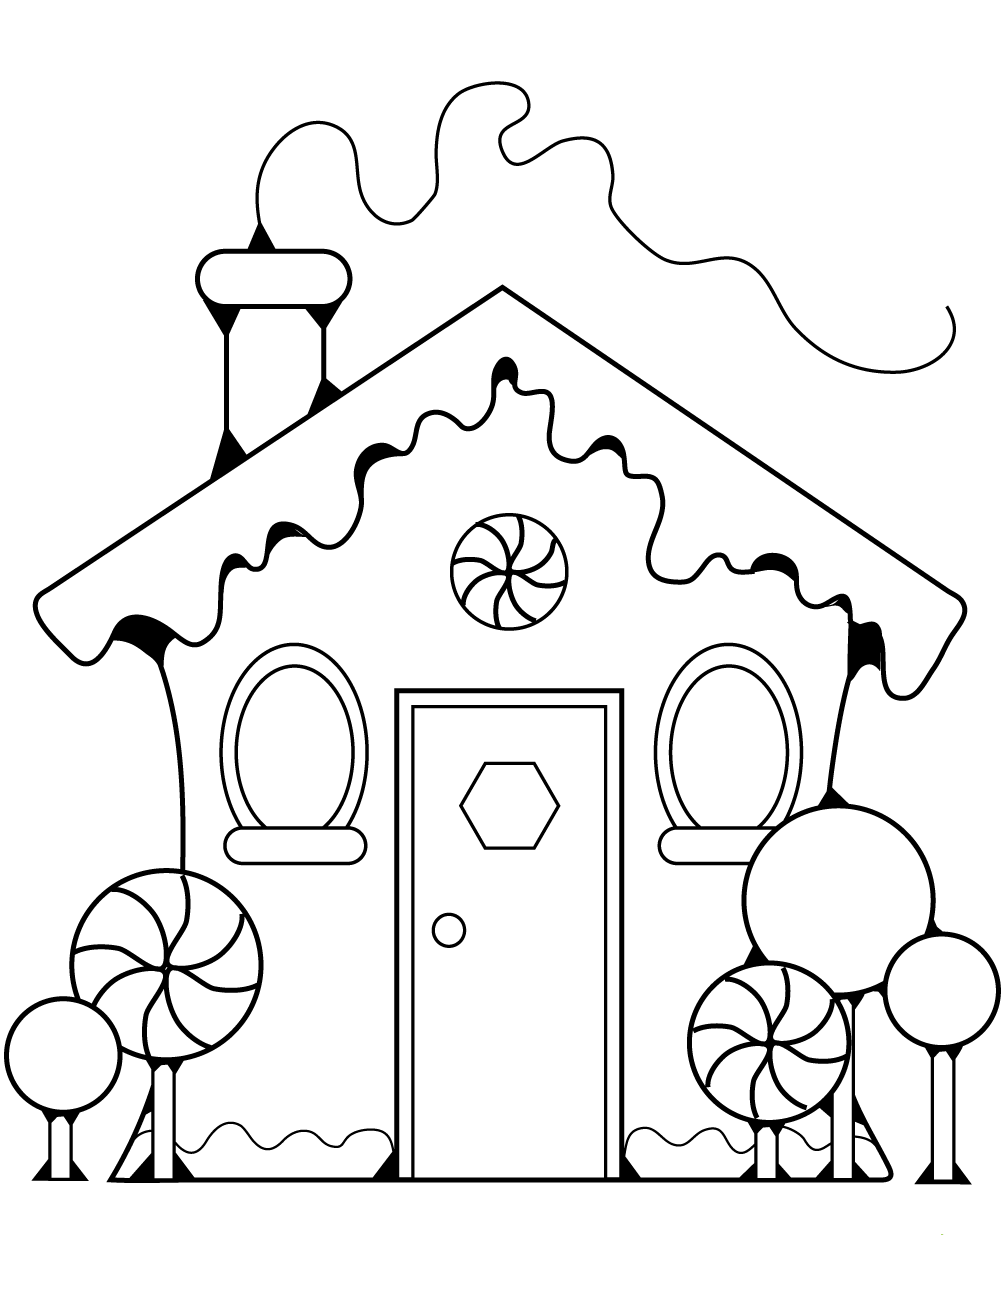 coloring gingerbread house get this gingerbread house coloring pages free for kids coloring gingerbread house